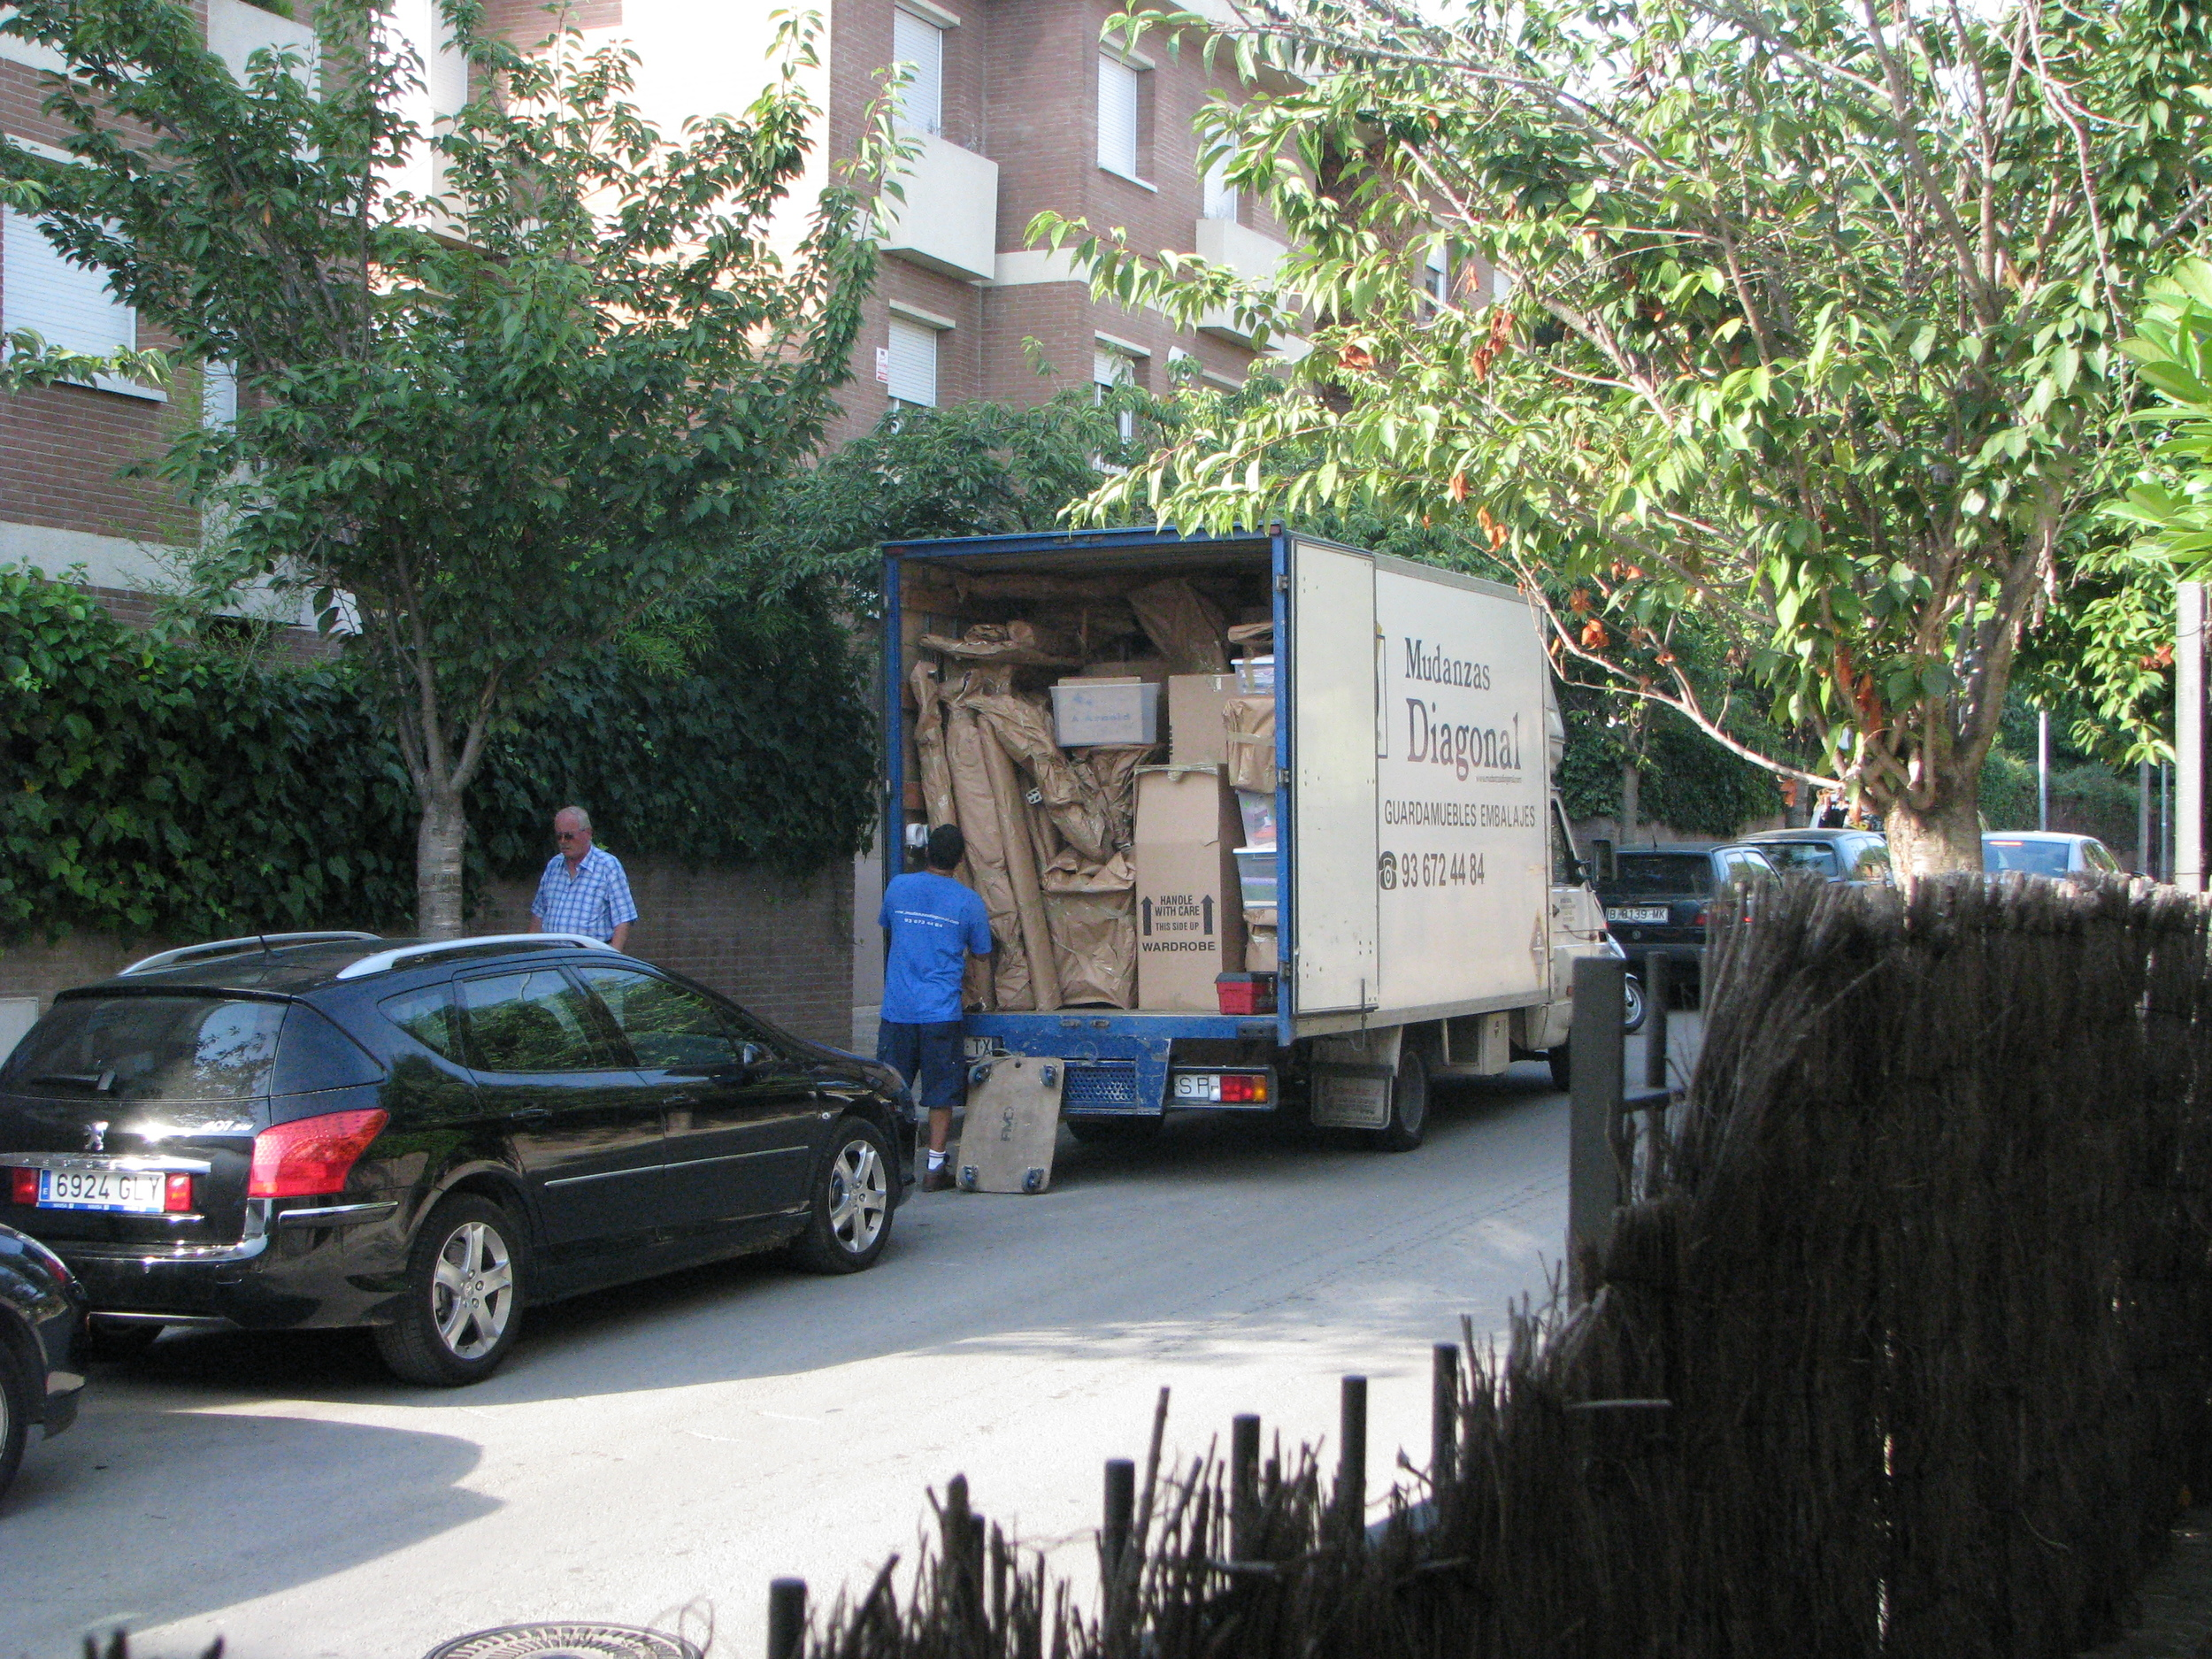 Moving truck in Barcelona, Spain 2009